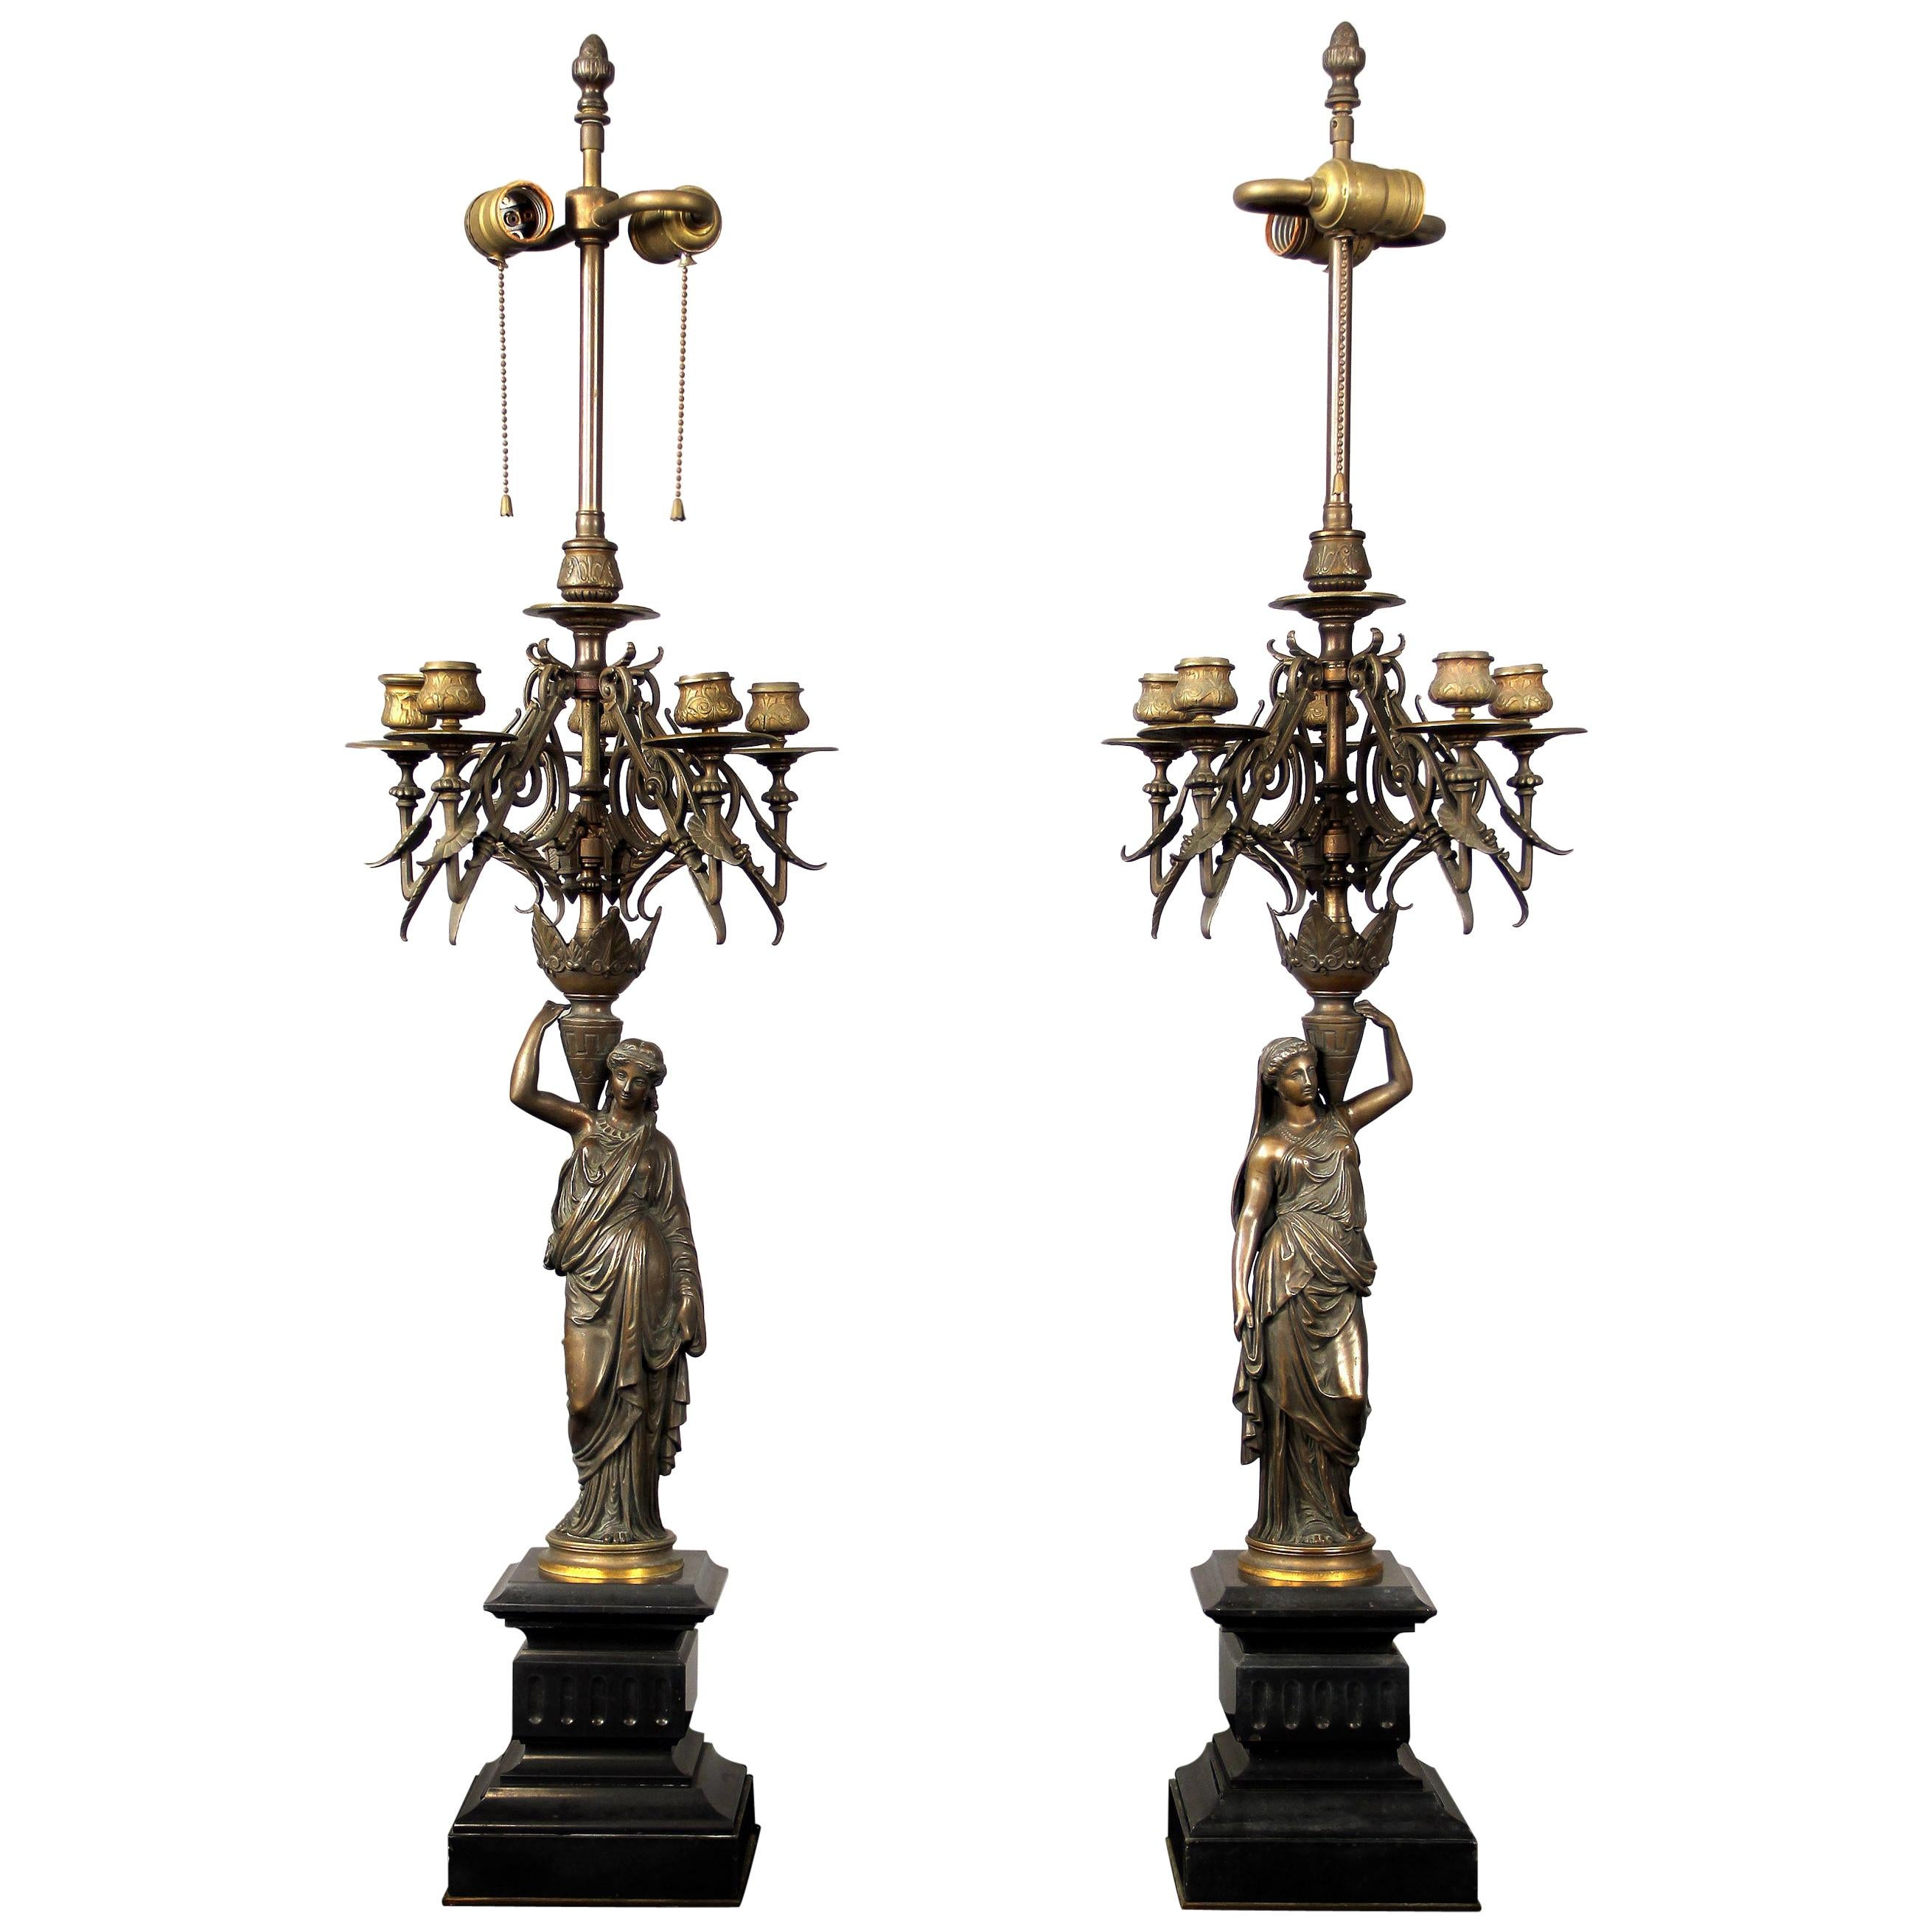 Nice Pair of Late 19th Century Patina Bronze Figural Candelabra Lamps